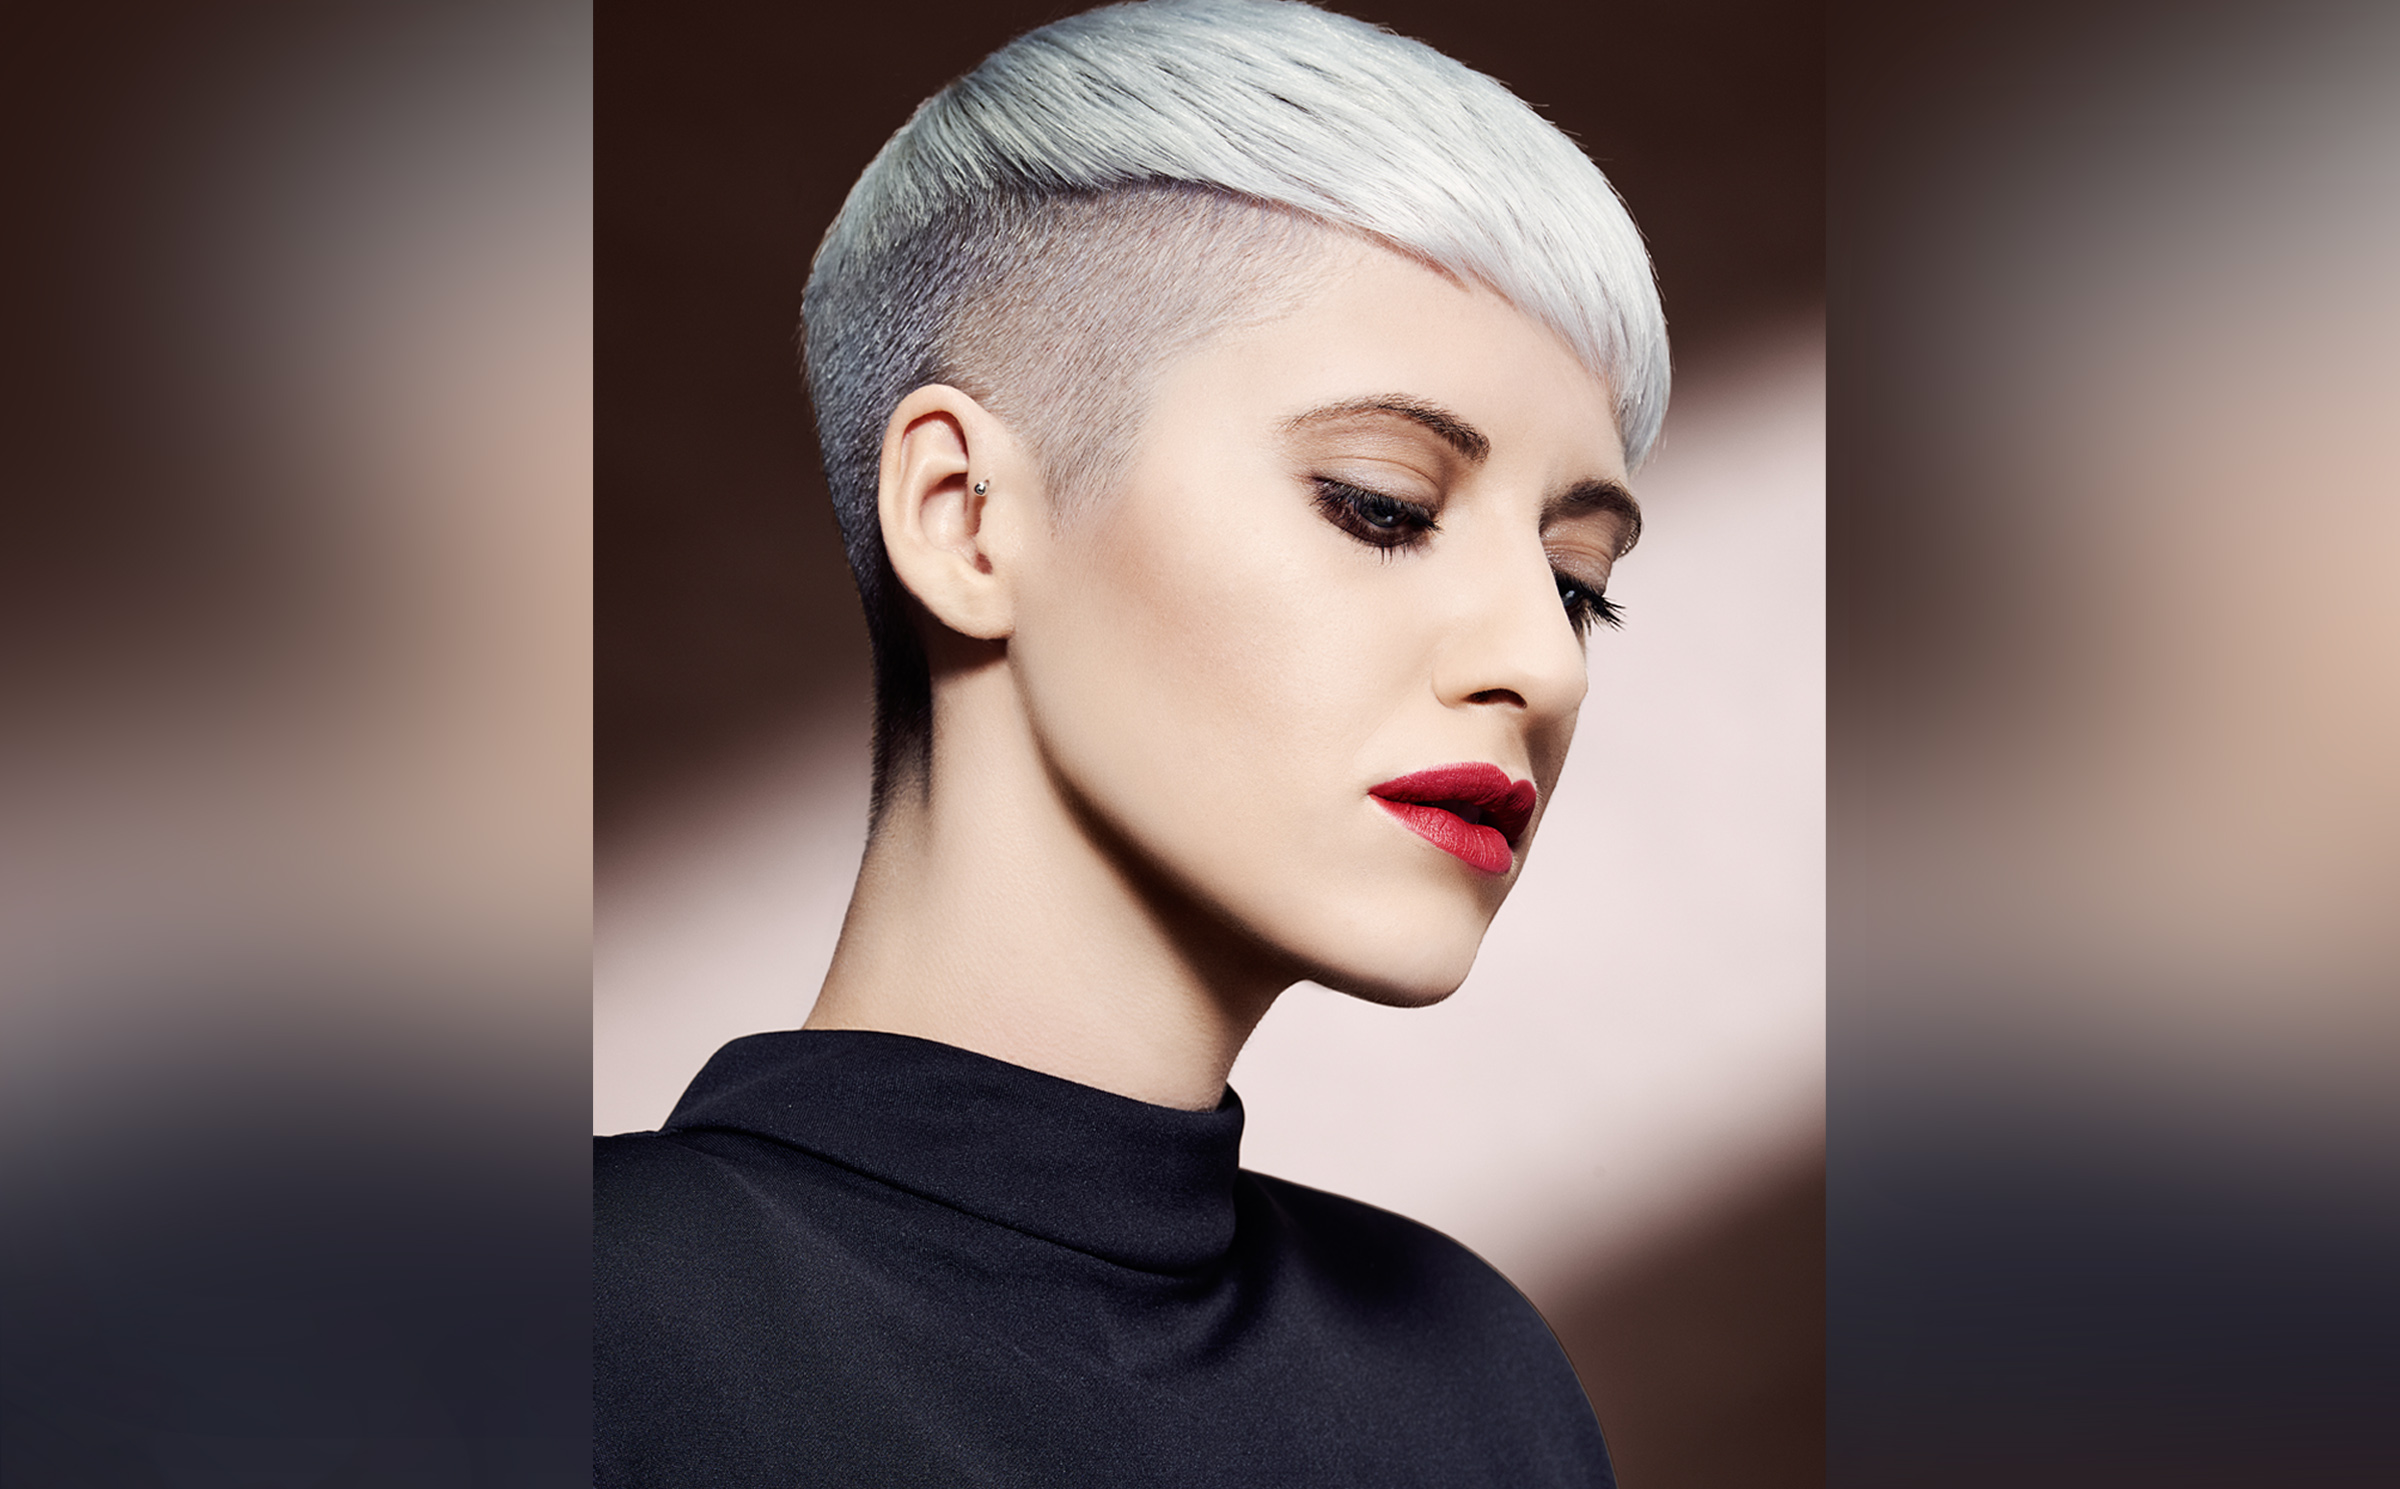 d537d25fd19 Andrew Collinge Hairdressing | Award Winning Hair Salons & Products